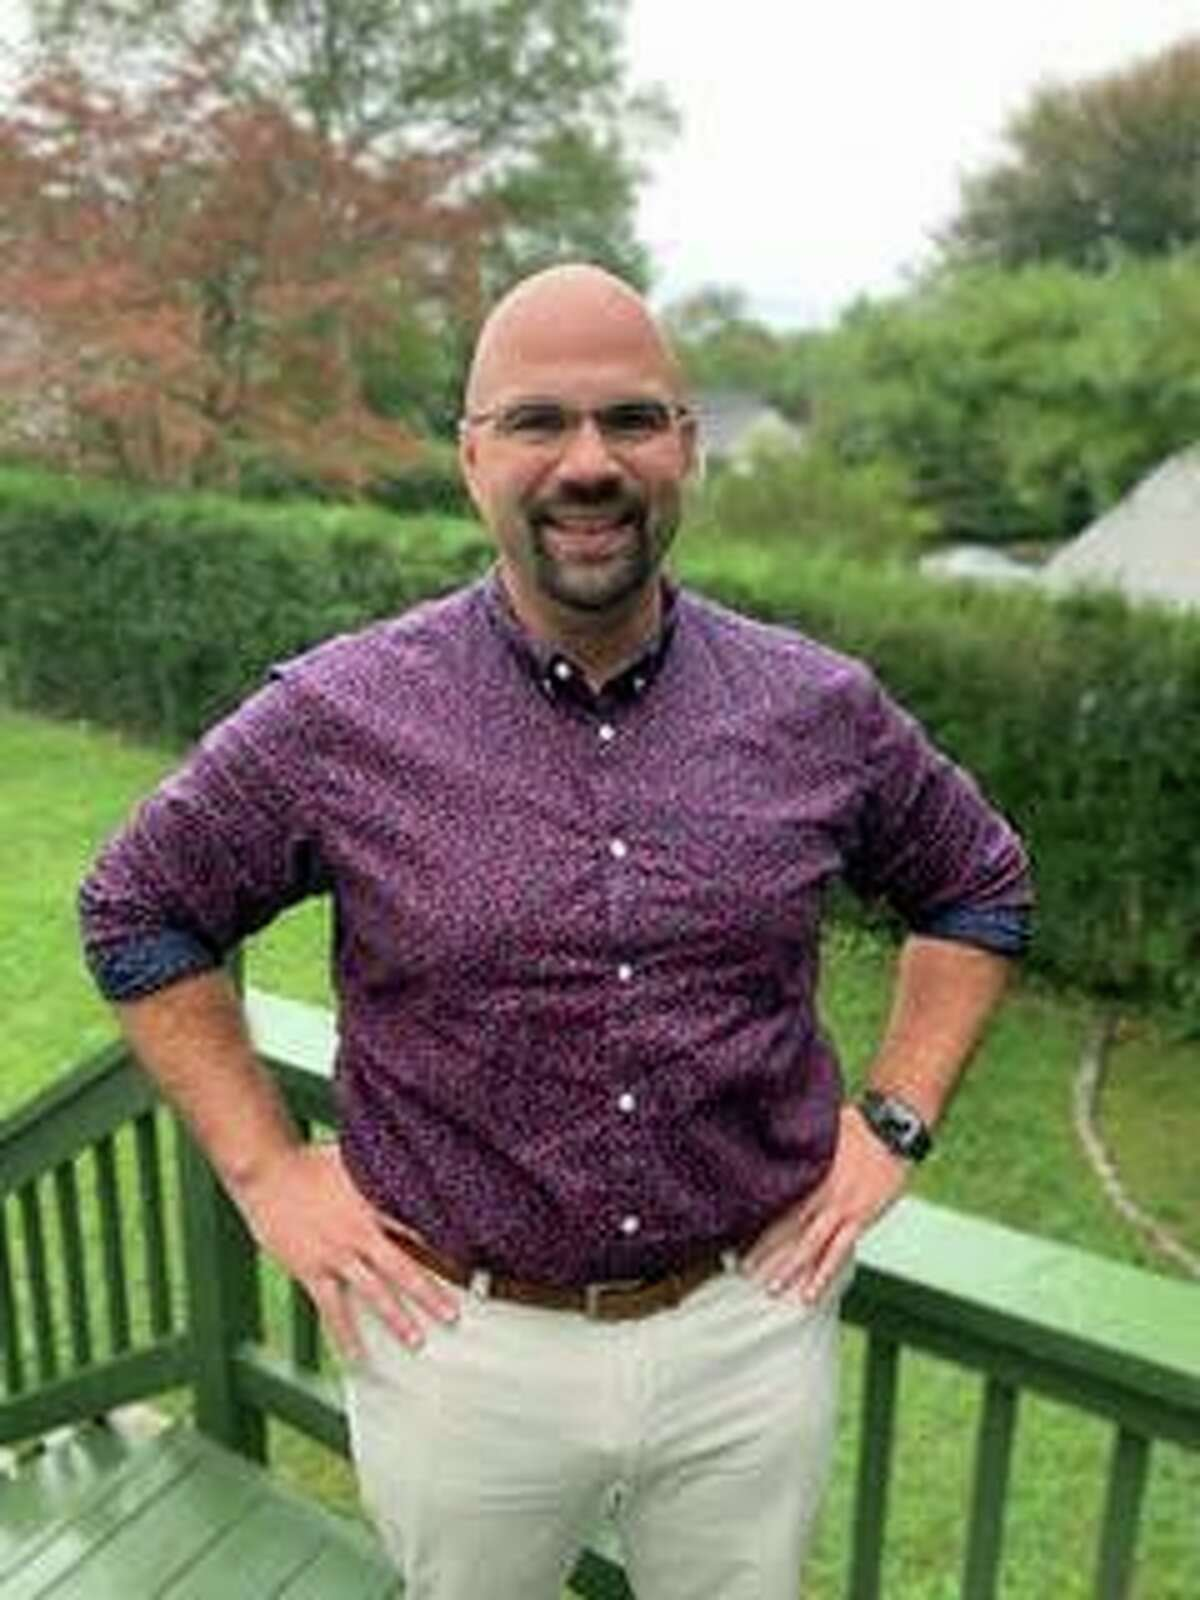 Greenwich Public Schools announced that Thomas Pereira would be Greenwich High School's new Dean of Student Life, effective Oct. 1, 2020.